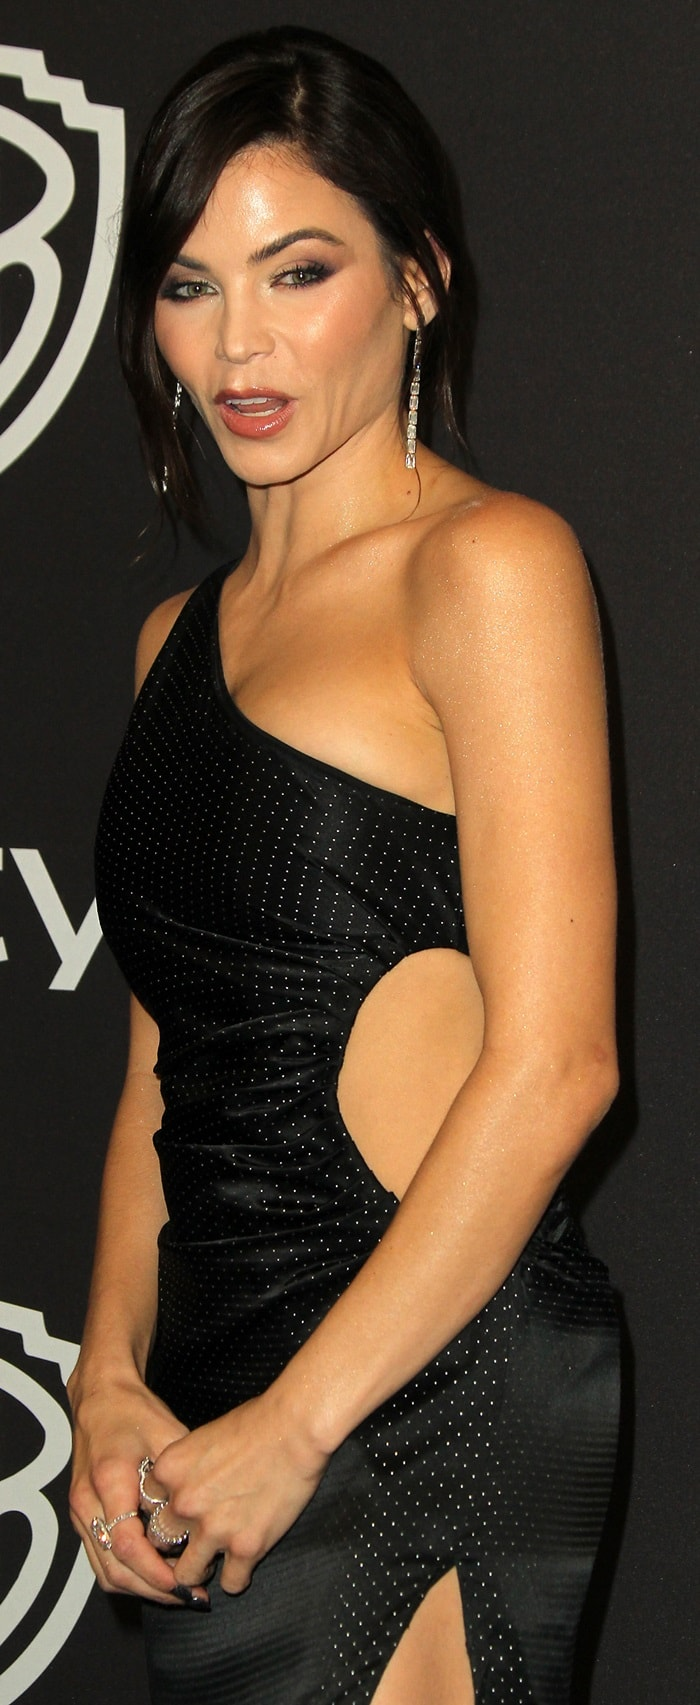 Jenna Dewan in a daring cutout gown at InStyle's Golden Globes After Party